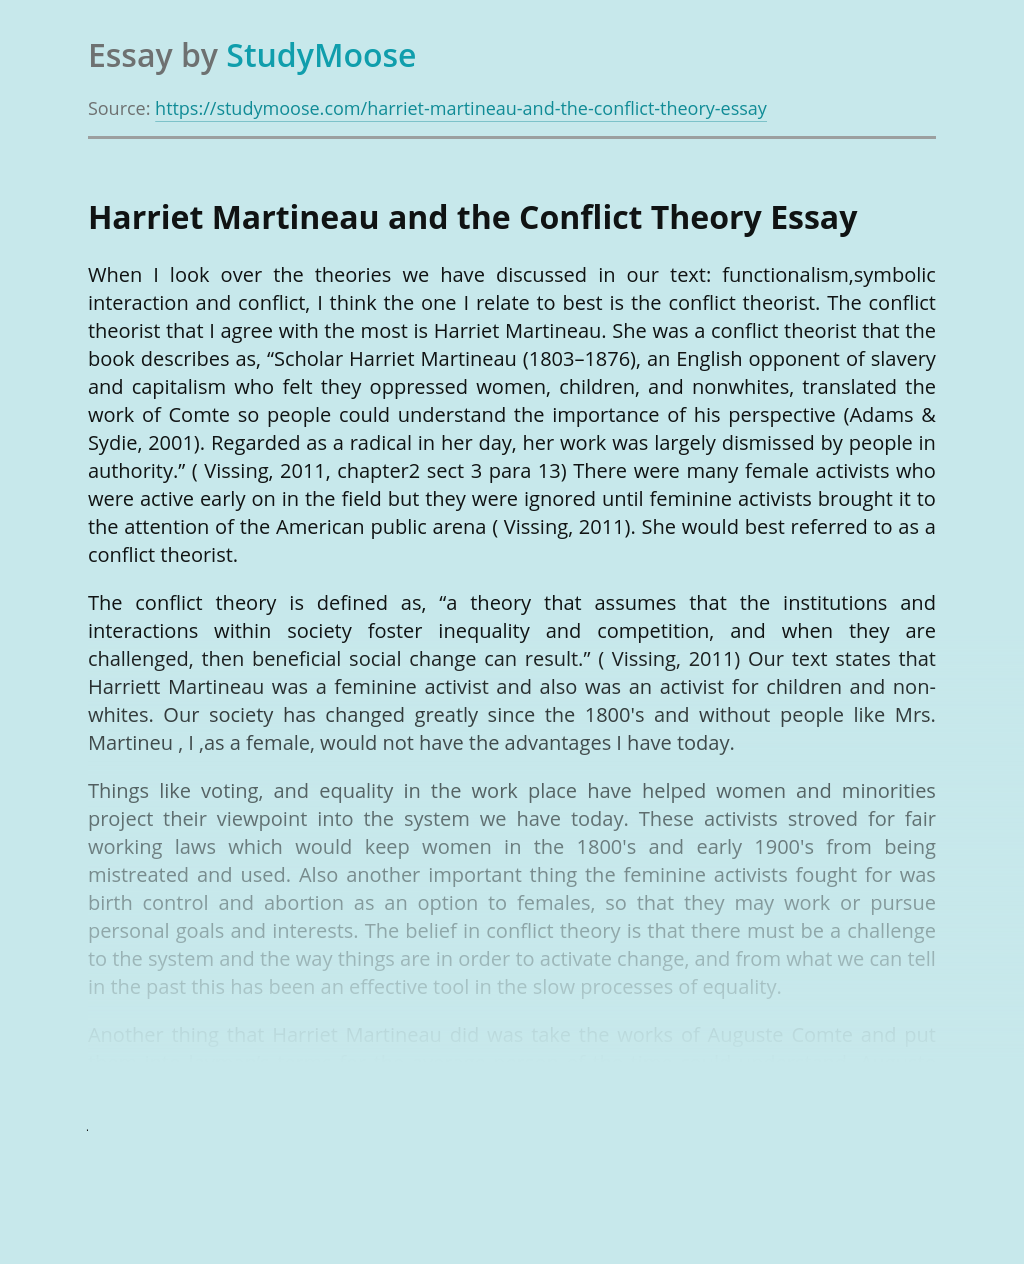 Harriet Martineau and the Conflict Theory